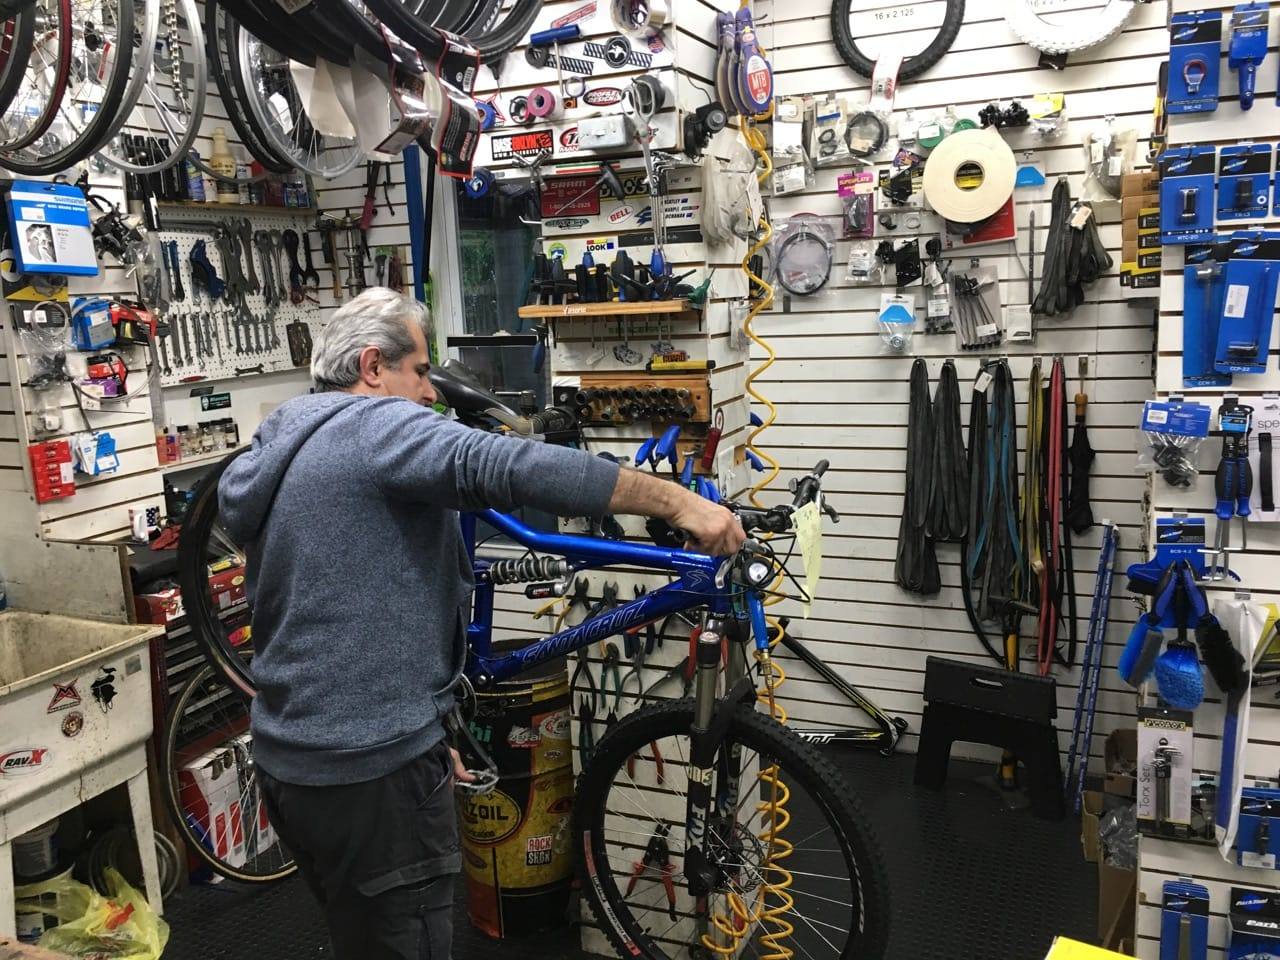 A picture of a Bike being repair at Bikeland